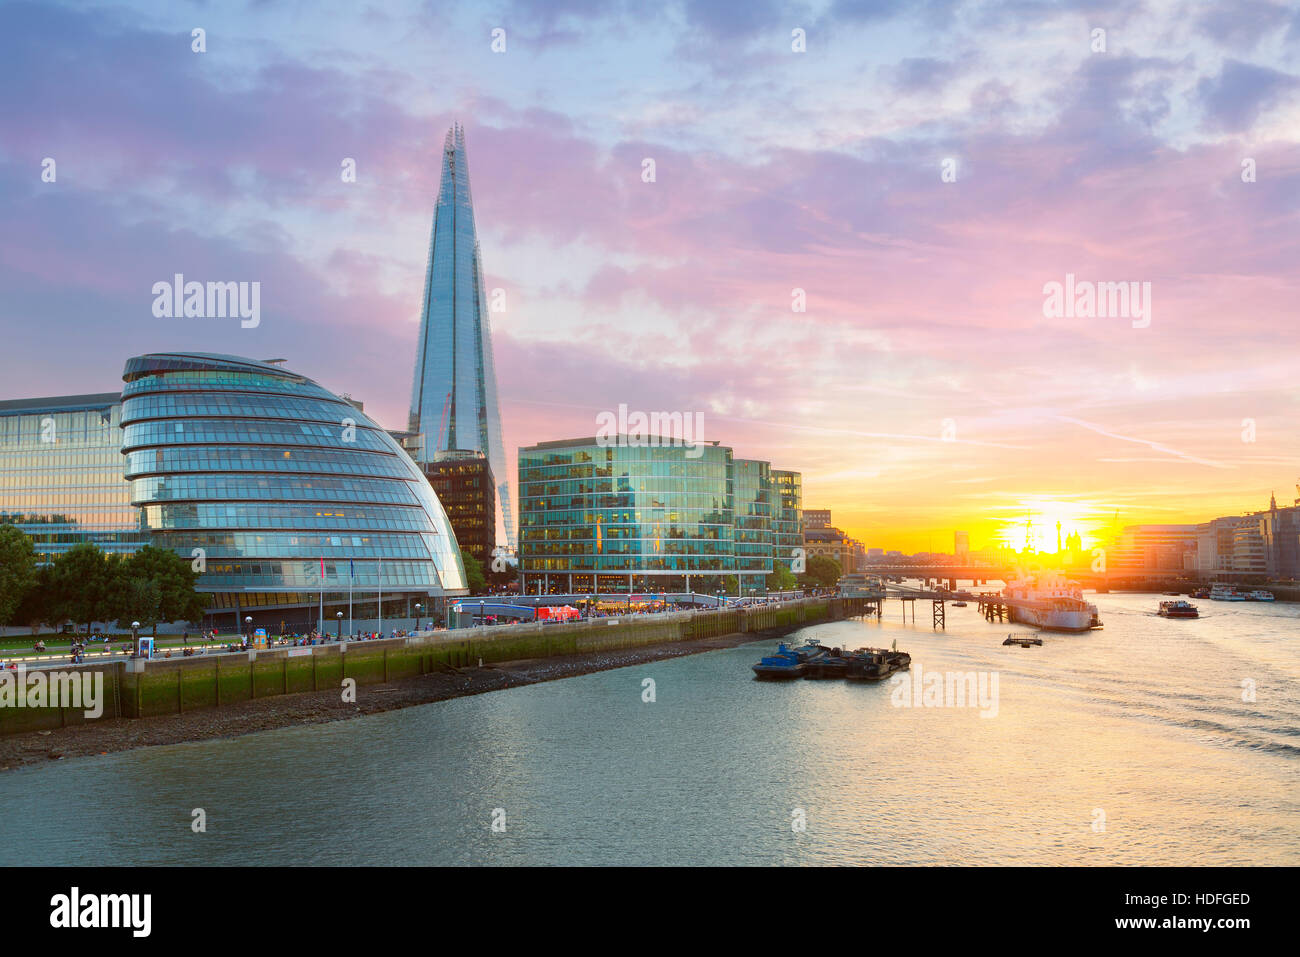 London City Hall and the Shard at sunset - Stock Image